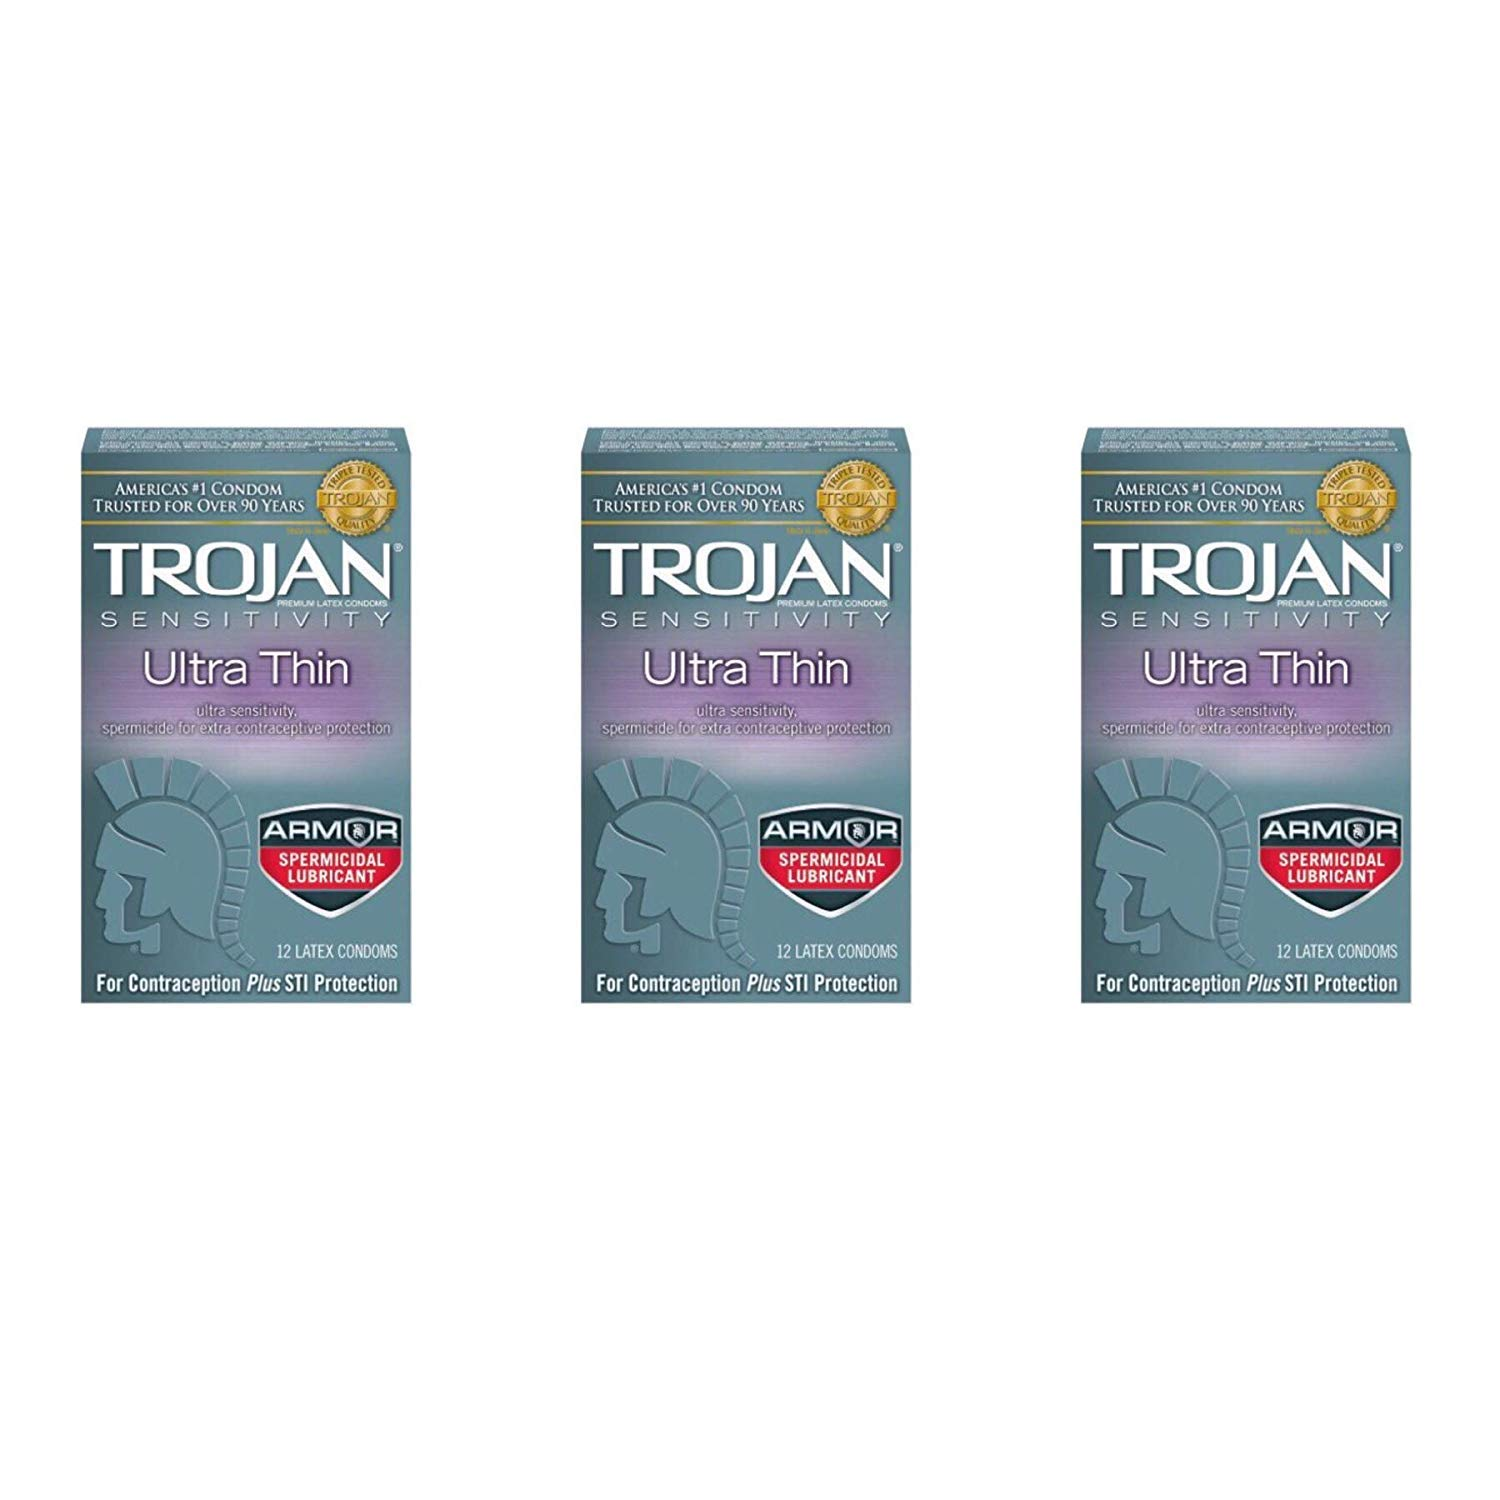 Trojan Ultra Thin Latex Condoms, Spermicidal Lubricant, 12-Count Boxes (Pack of 3) by TROJAN